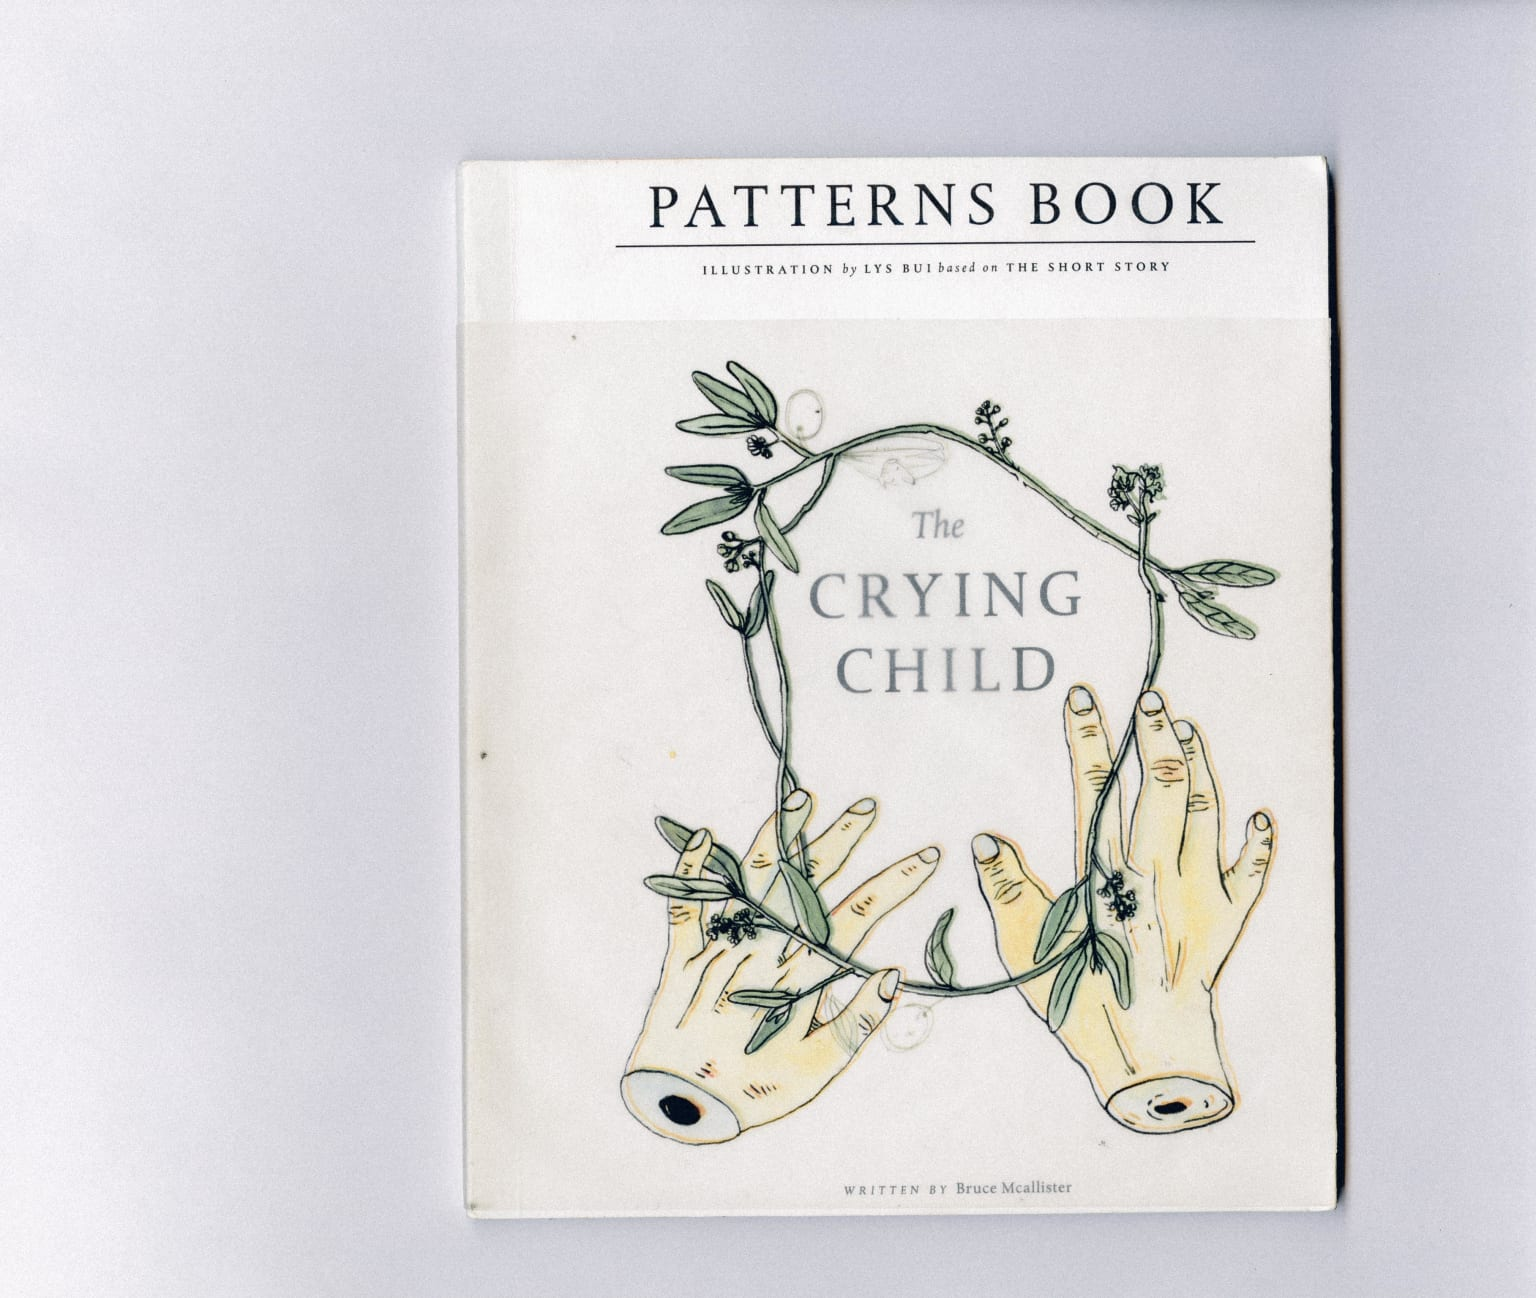 The Crying Child Pattern Book